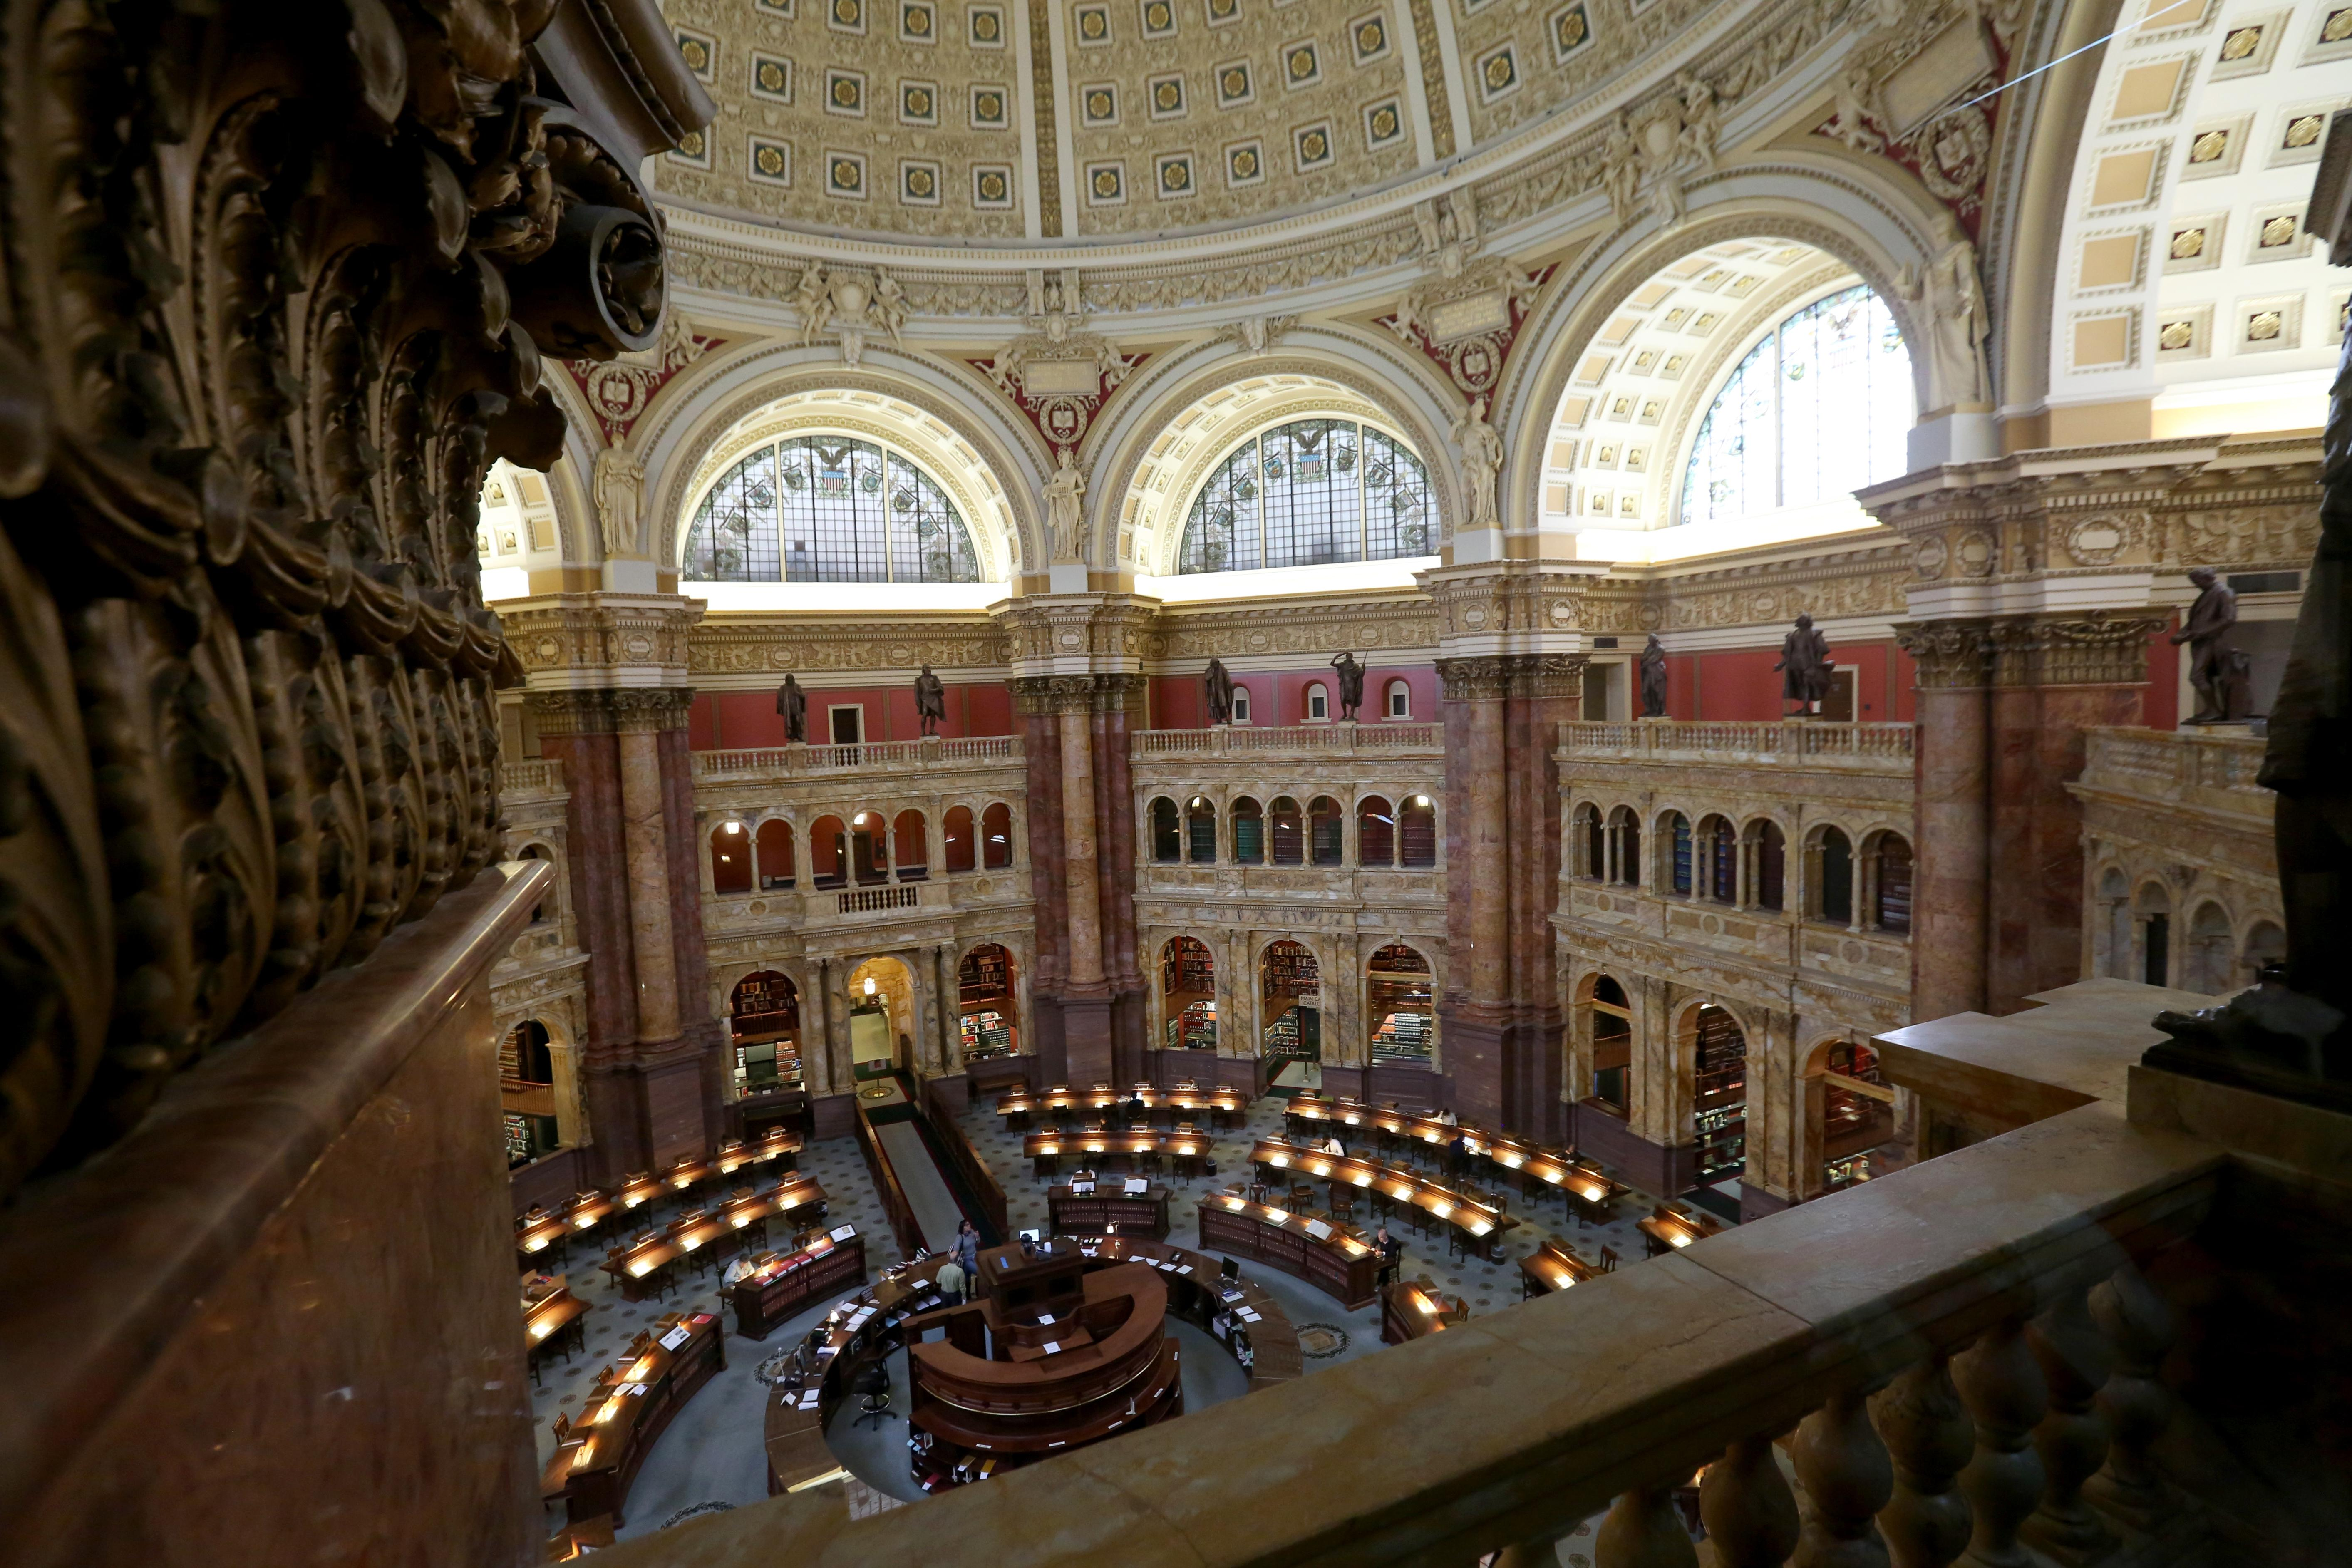 You need a reader card to access the Library of Congress' reading room, but it's a fairly painless process and completely worth it. If you can manage to stop looking at the incredible architecture, the reading room is actually a quiet spot to dive into  a book - maybe take a peak at Thomas Jefferson's library for some inspiration while you're there! (Amanda Andrade-Rhoades/DC Refined)